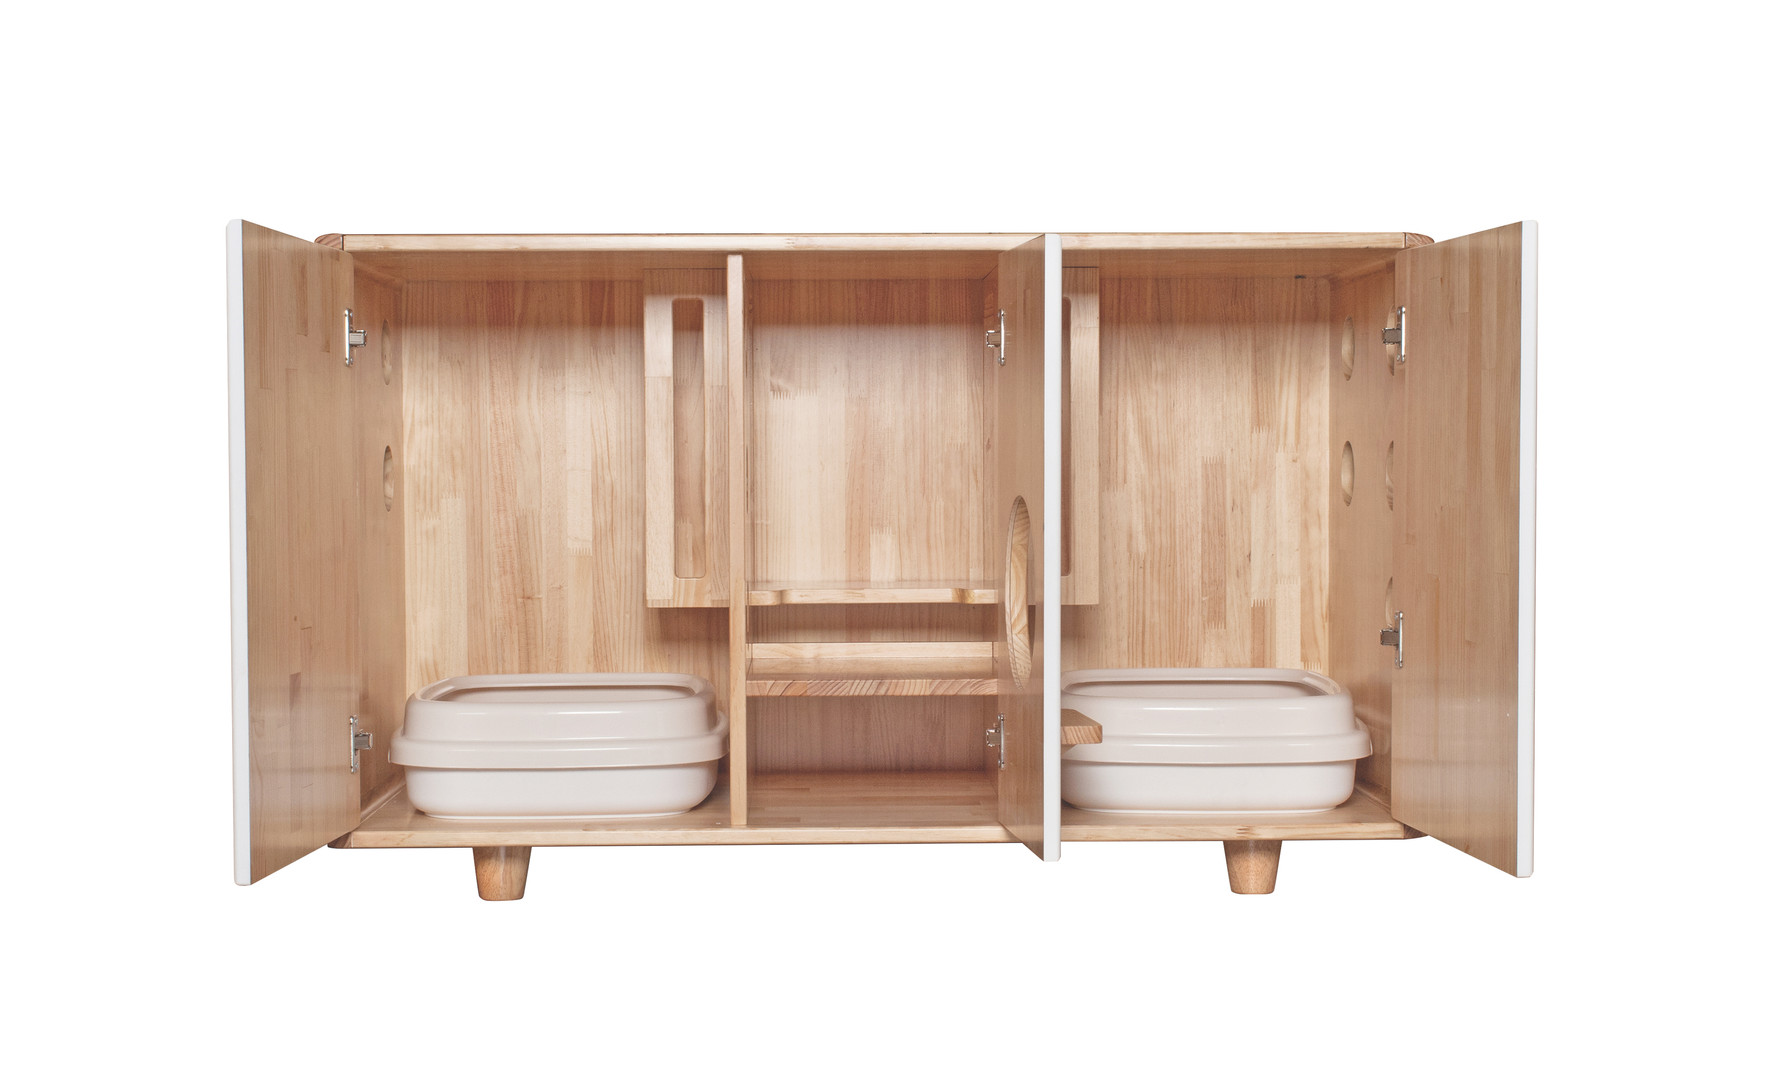 Two Basin Style-3